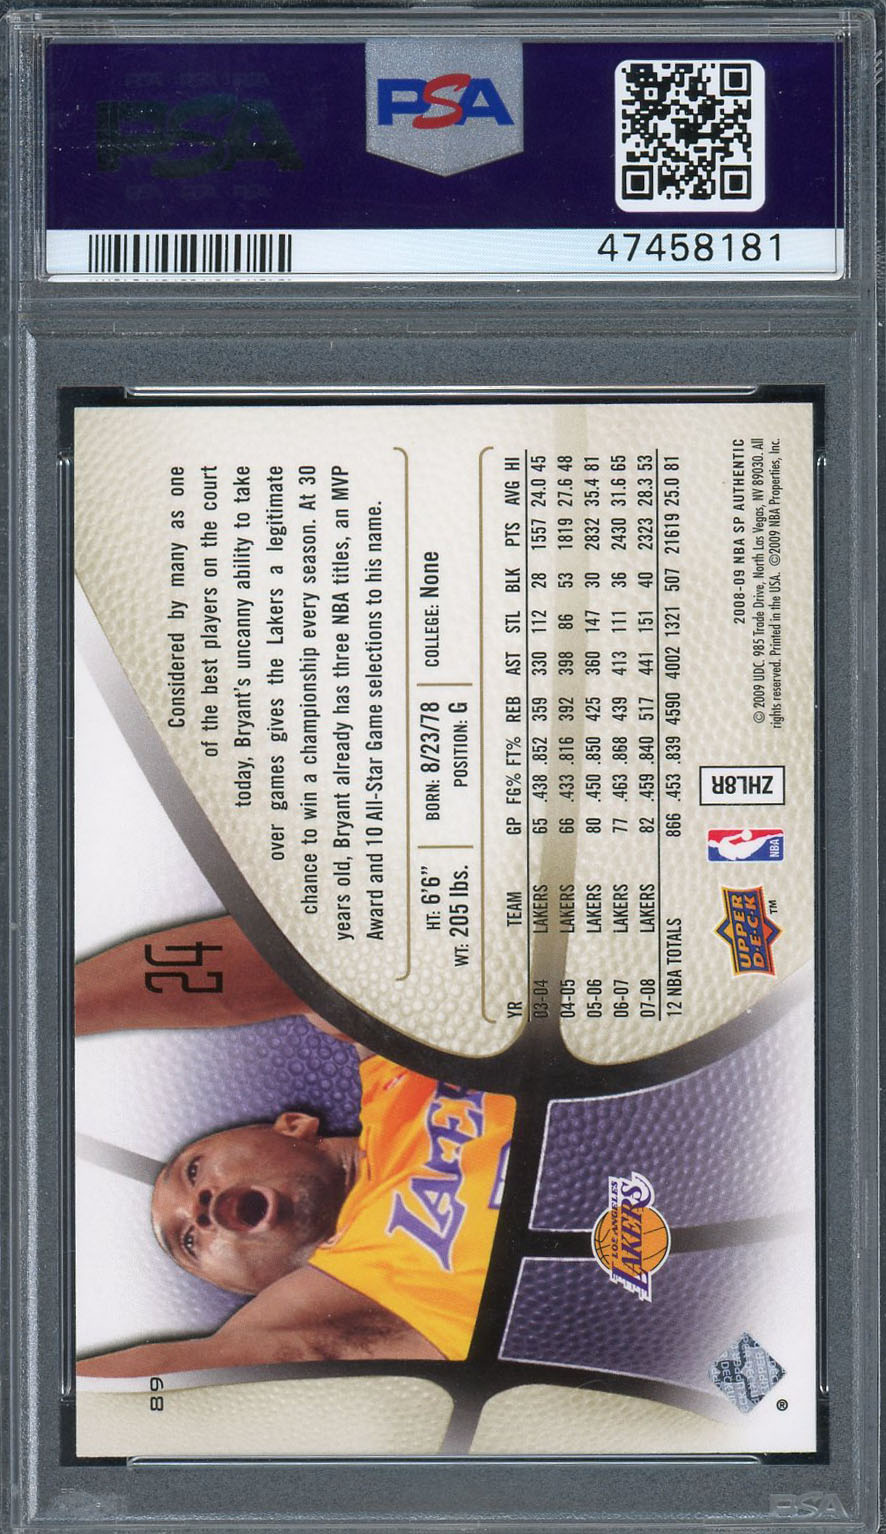 Kobe Bryant Los Angeles Lakers 2008 SP Authentic Upper Deck Basketball Card #89 Graded PSA 10 GEM MINT Kobe Bryant Los Angeles Lakers 2008 SP Authentic Upper Deck Basketball Card #89 Graded PSA 10 GEM MINT